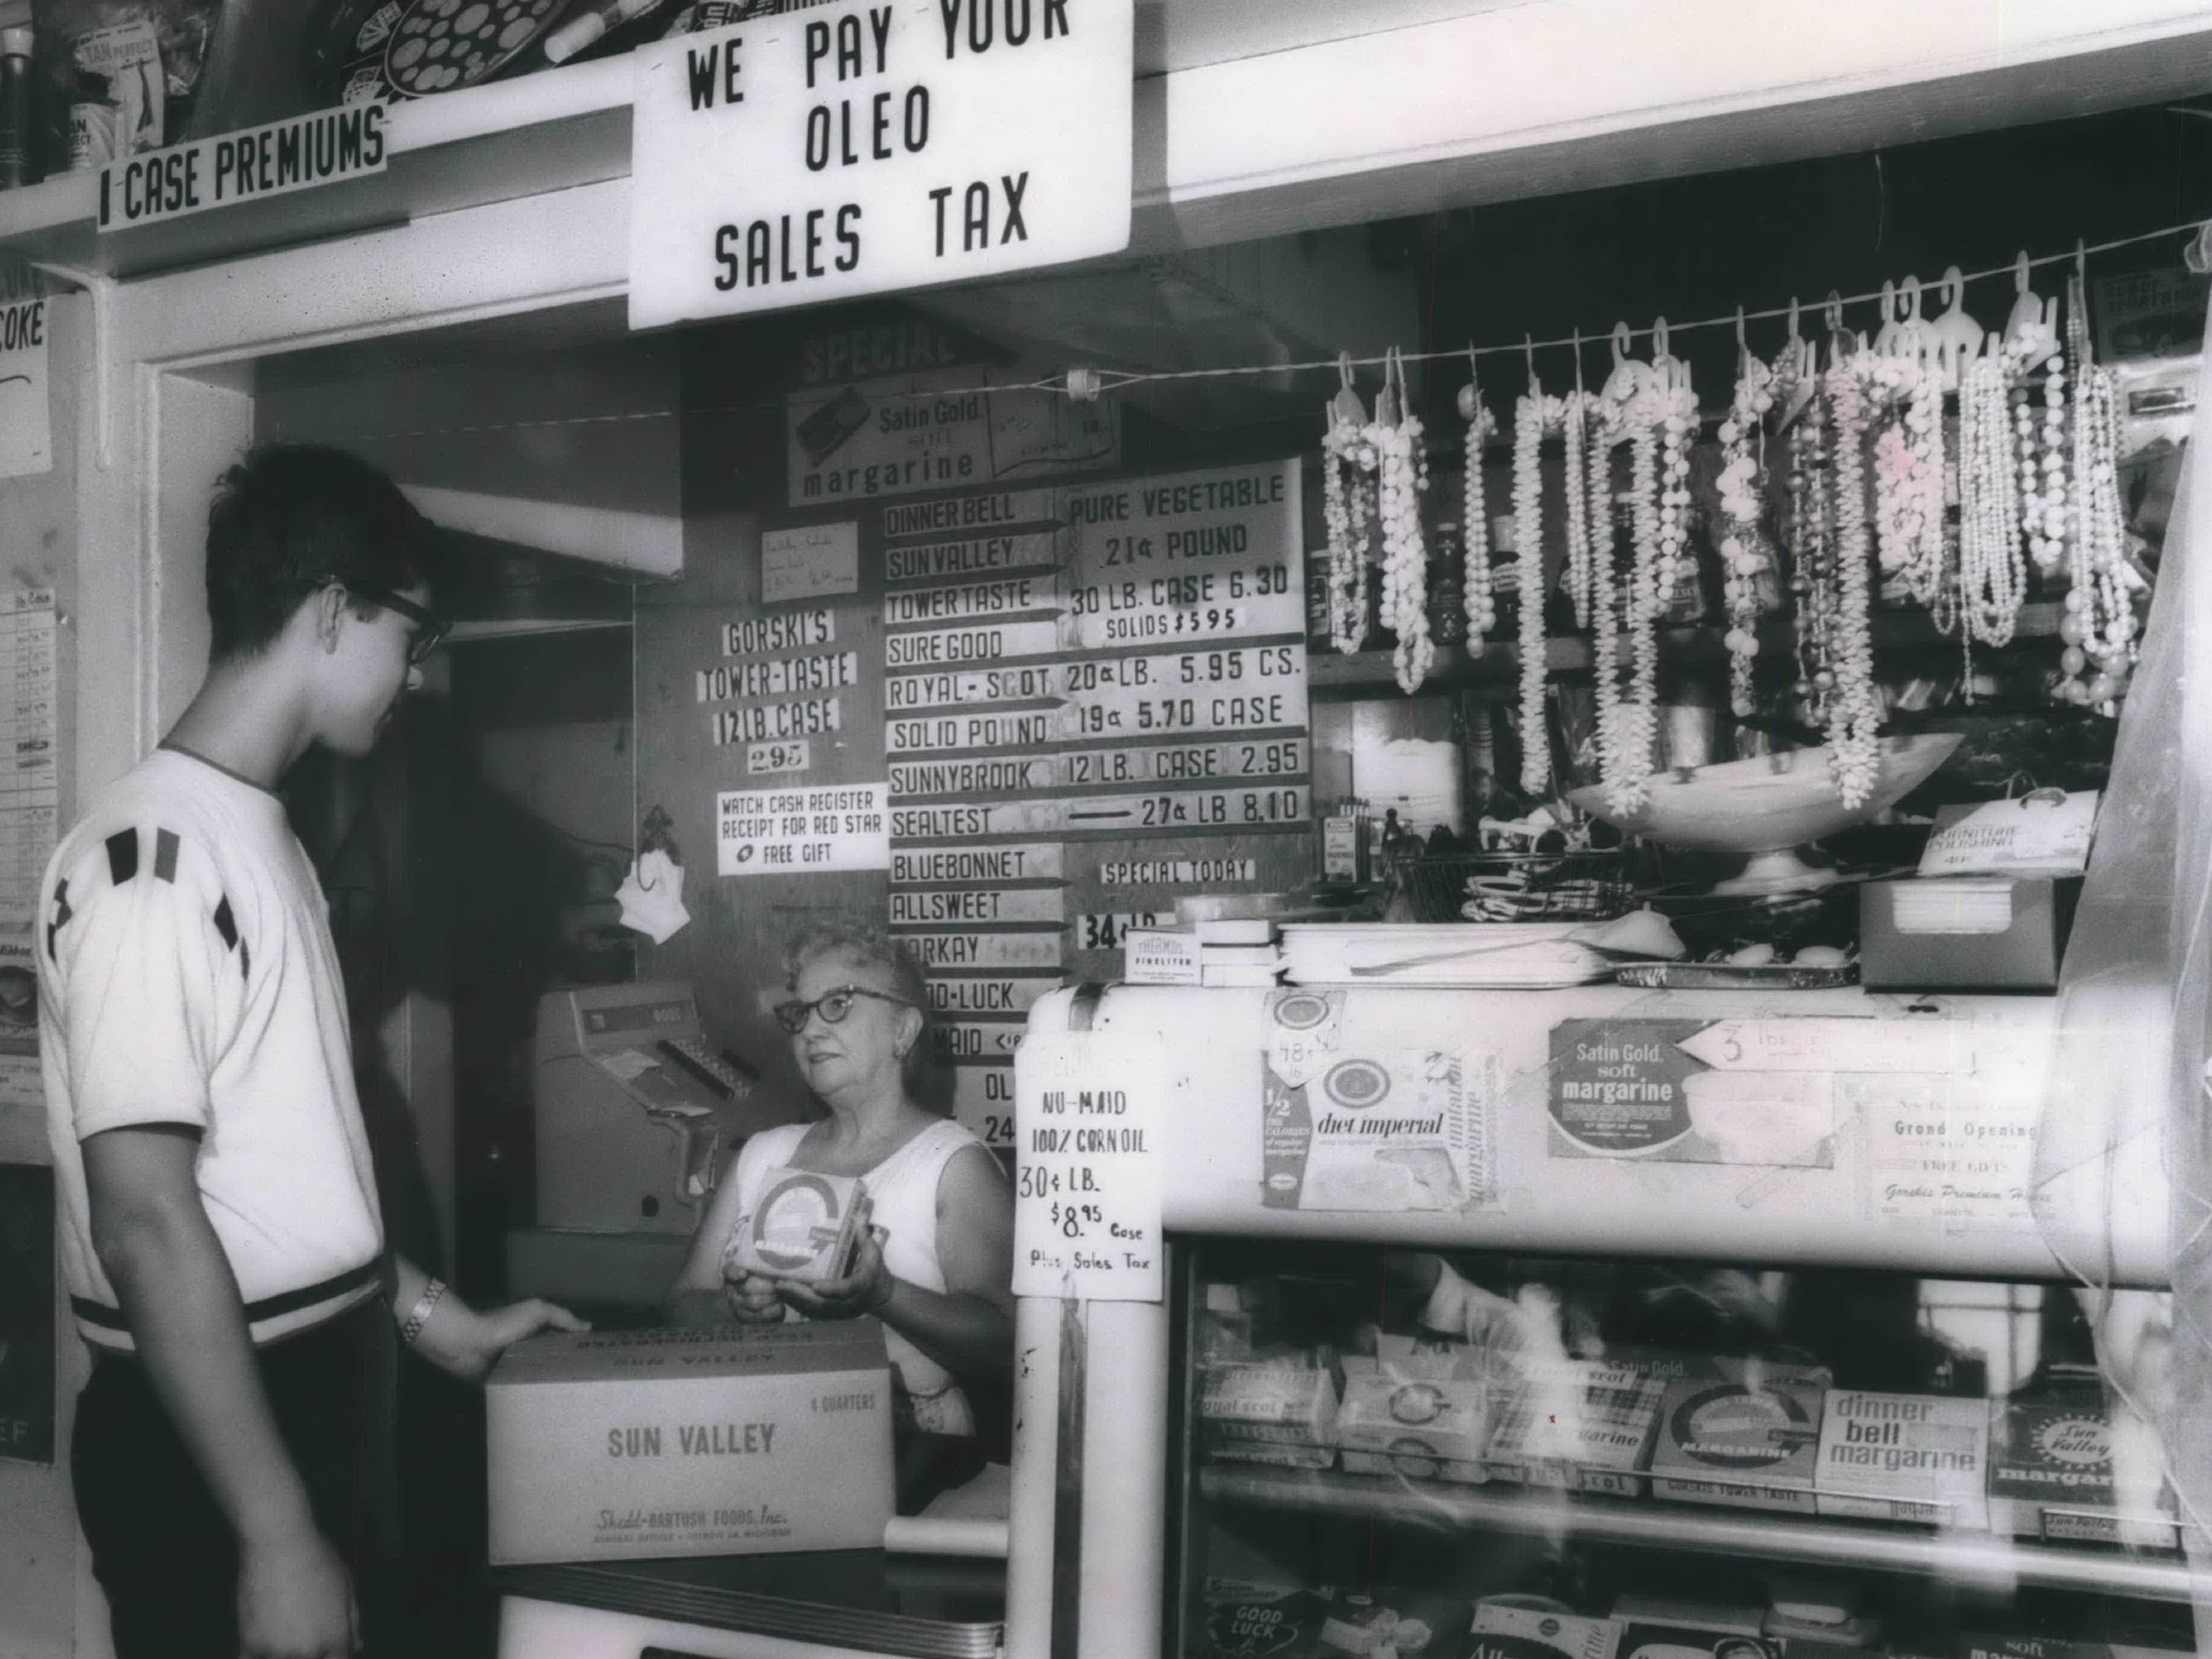 After Wisconsin repealed its oleo ban in 1967, sales across the border in Illinois began to drop. Vendors like this one in a restaurant near the state line offered to pay the oleo sales tax as a way to keep business.